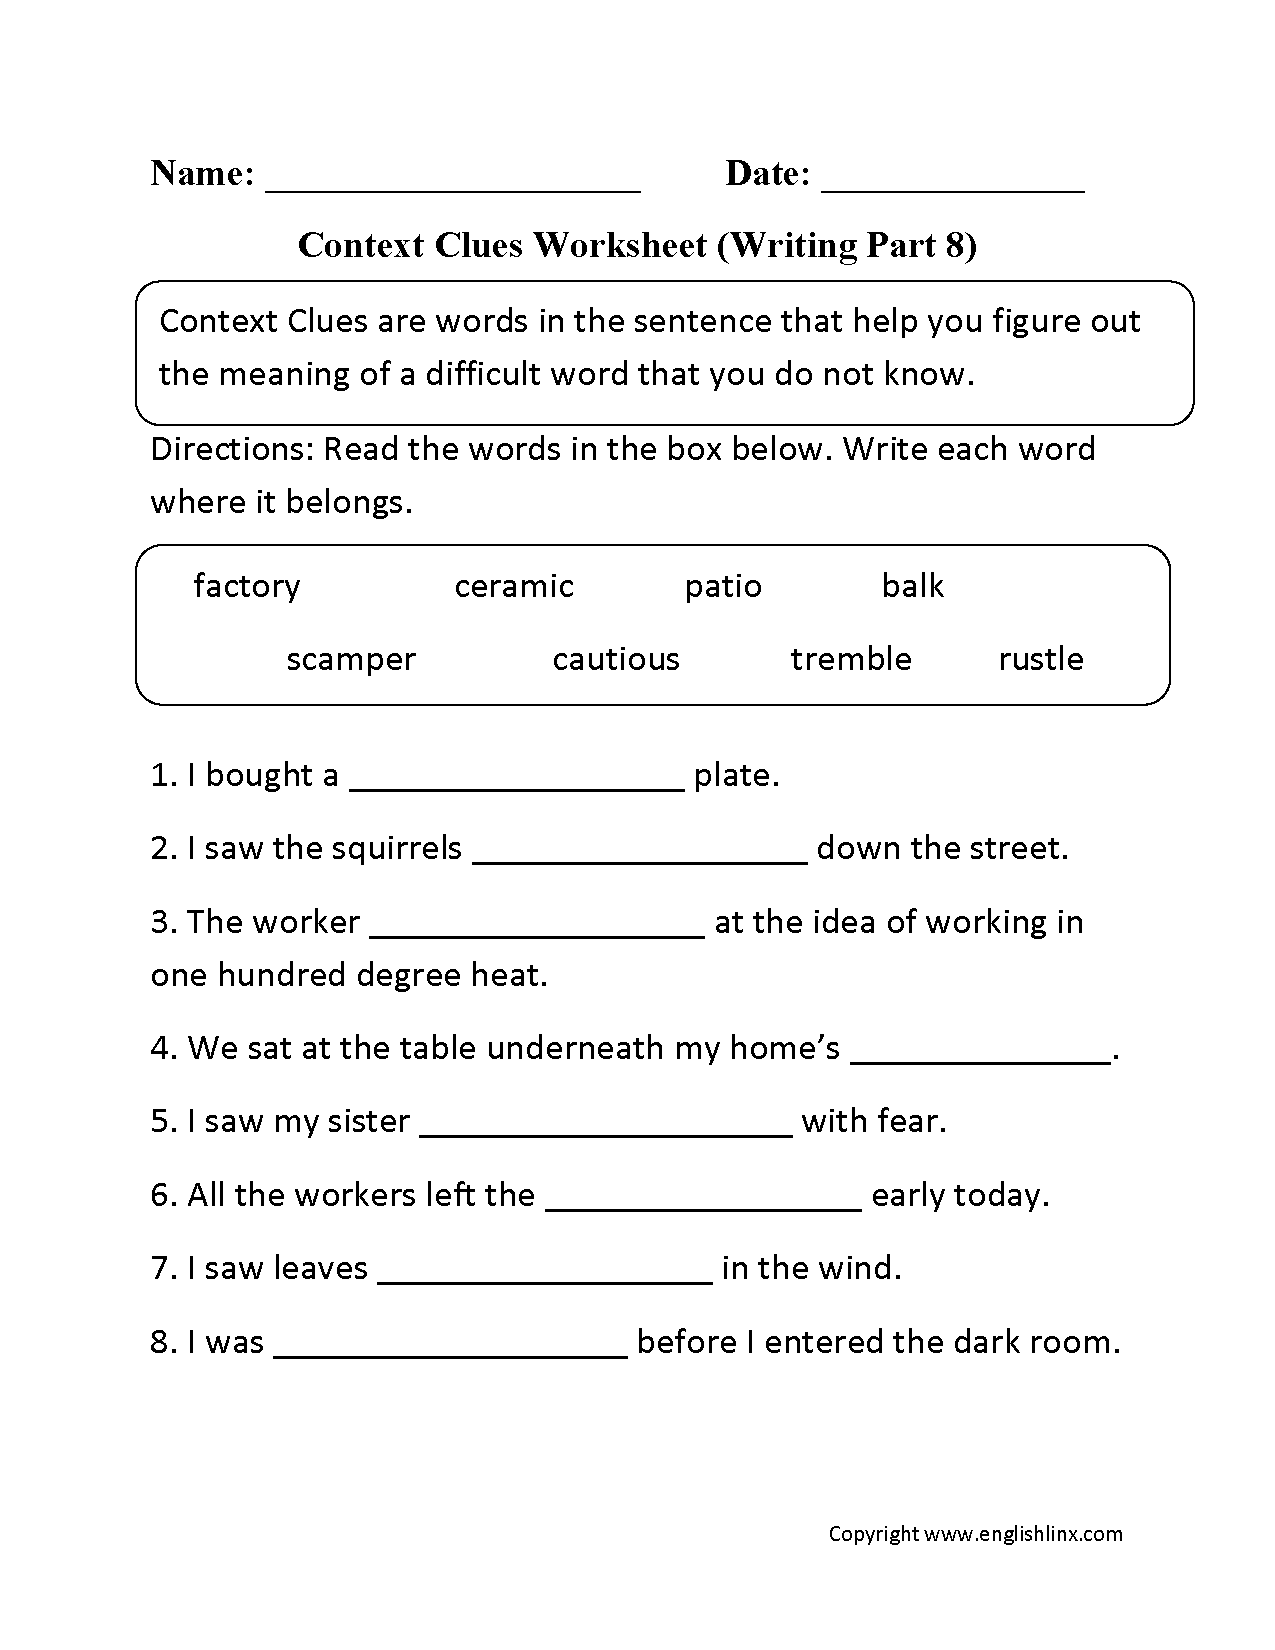 hight resolution of Context Clues Worksheet Writing Part 8 Intermediate   Context clues  worksheets